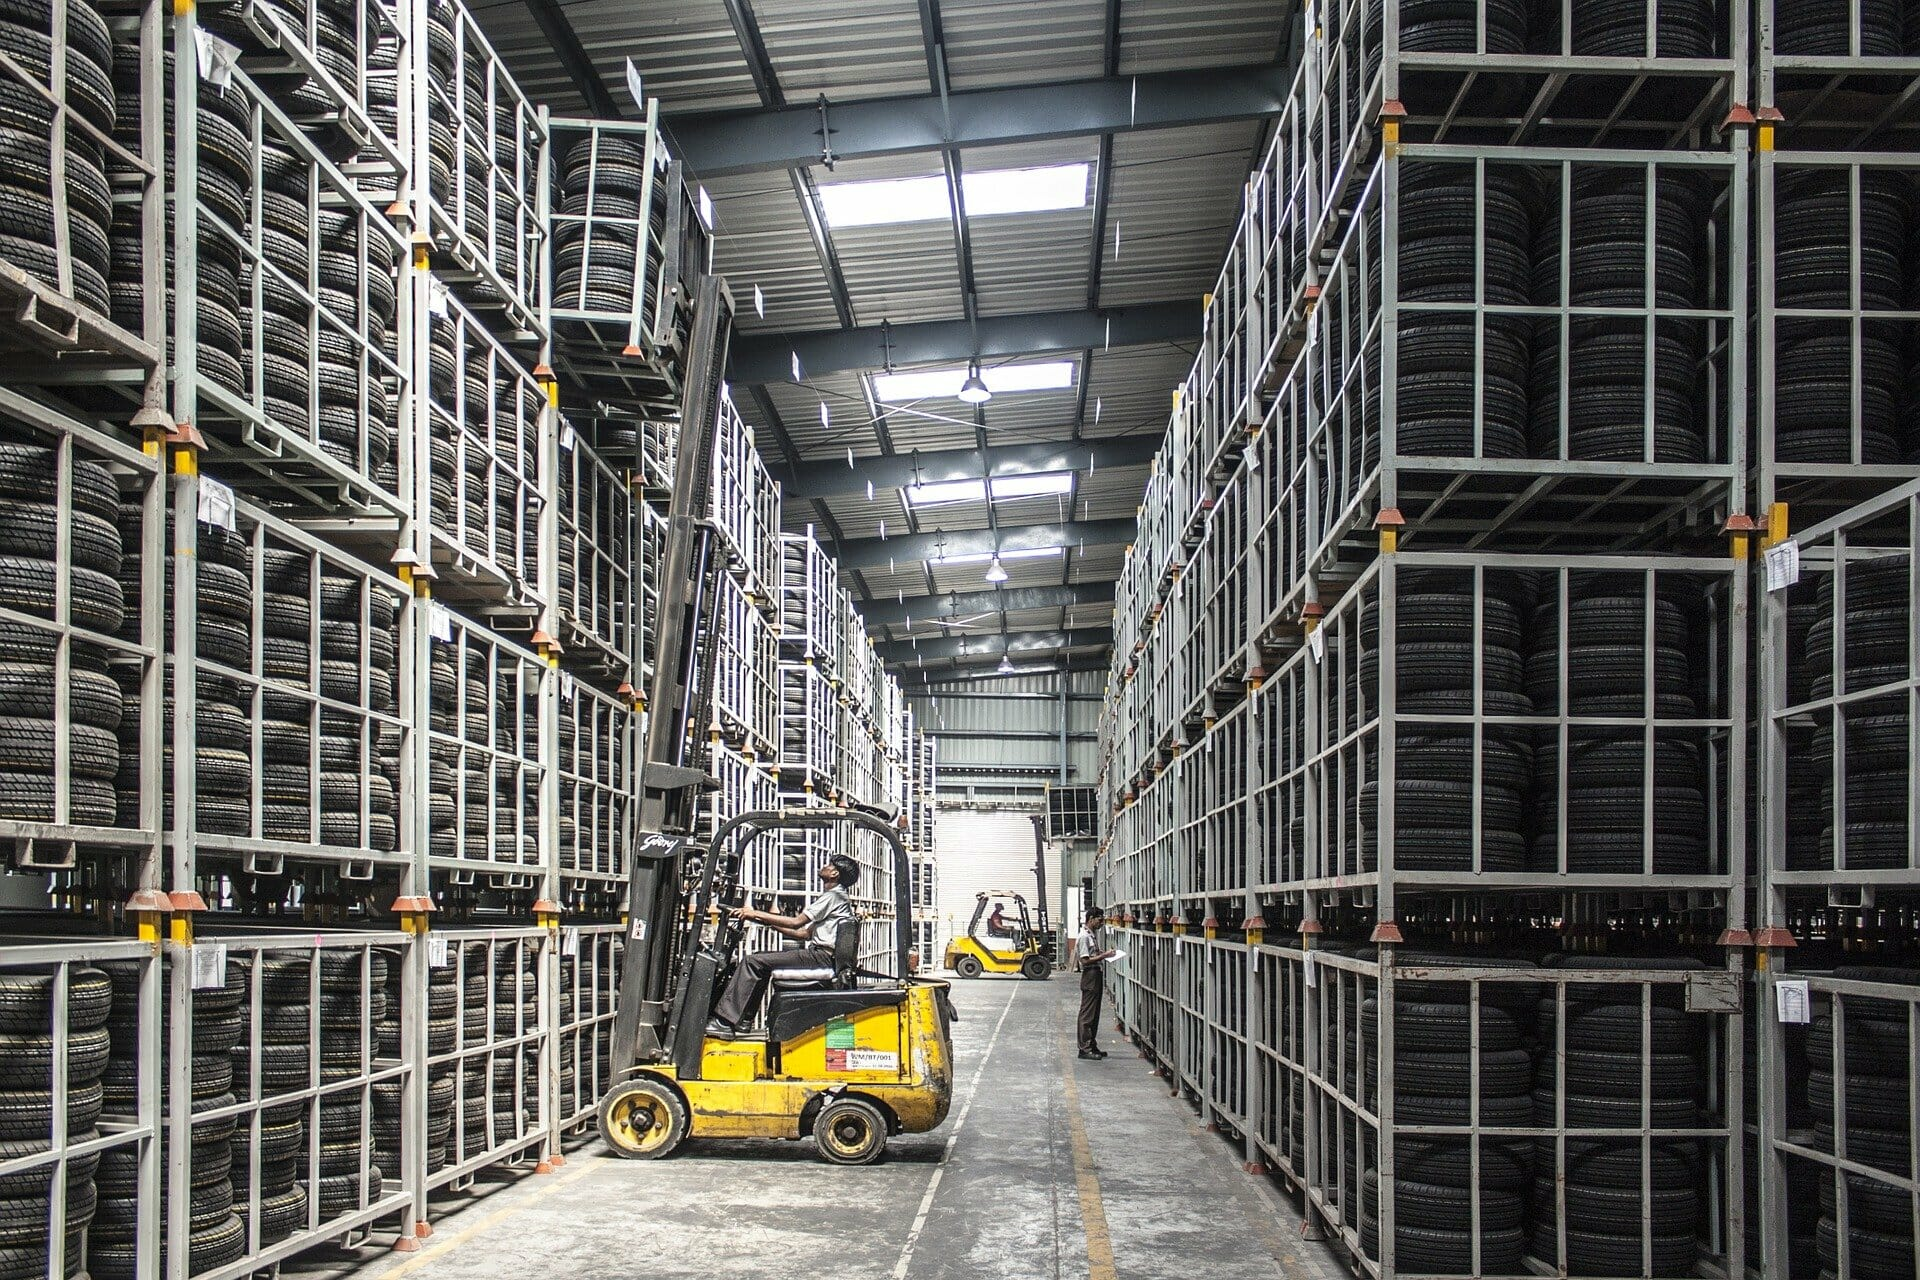 Forklift in a Tire Storage Facility